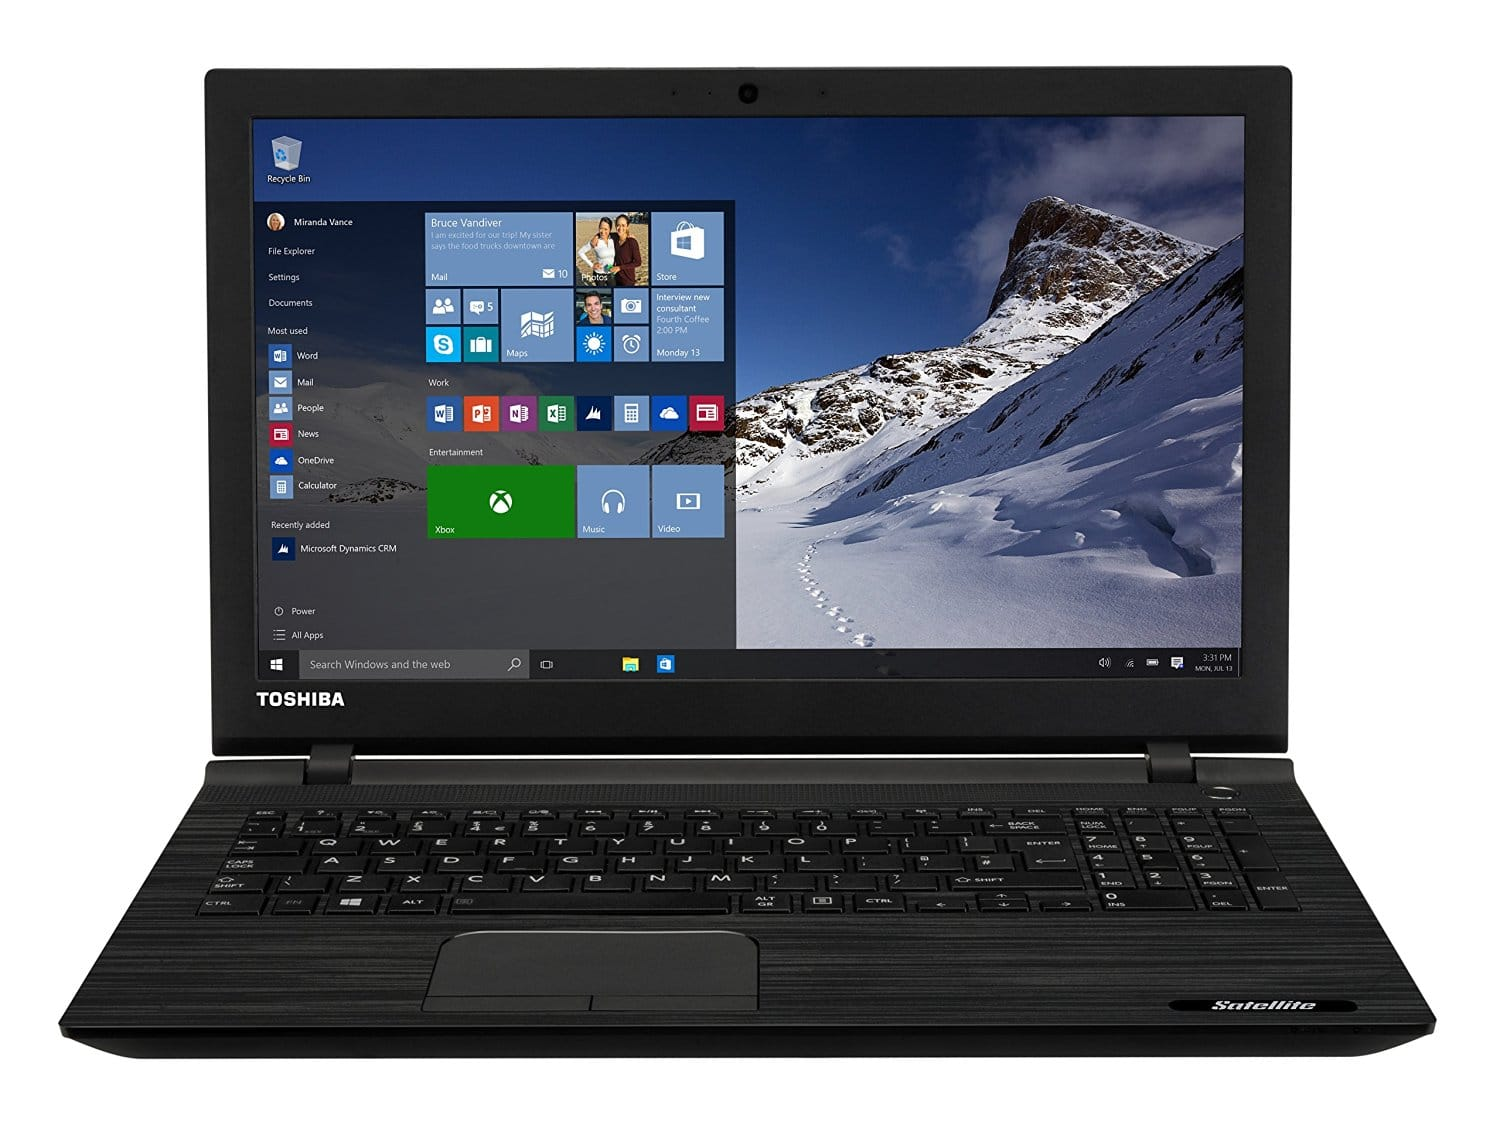 best Toshiba laptop under 400 pounds uk